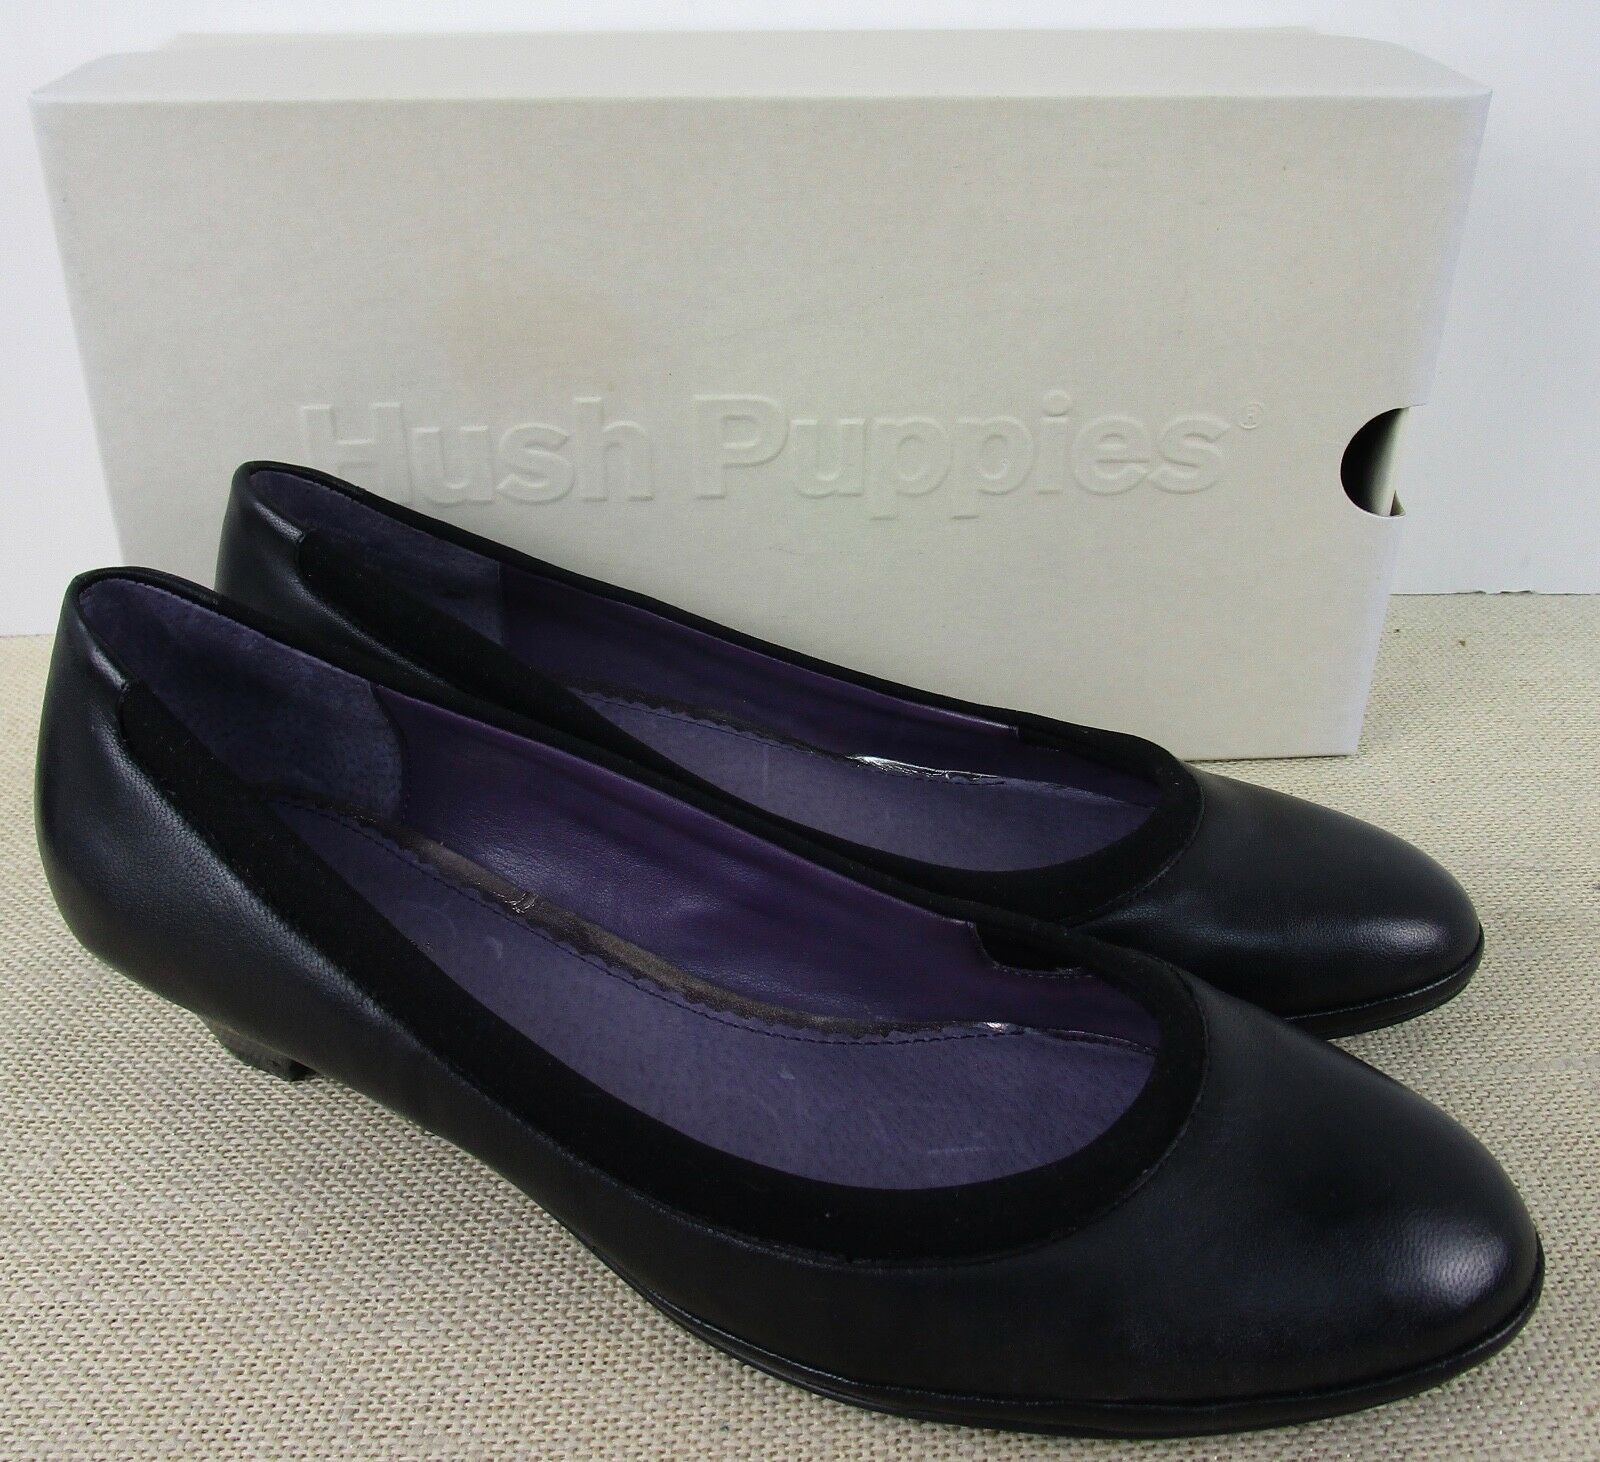 HUSH PUPPIES H501710 WOMEN'S EMINENCE BLACK LEATHER PUMPS SIZE 9M NEU IN BOX